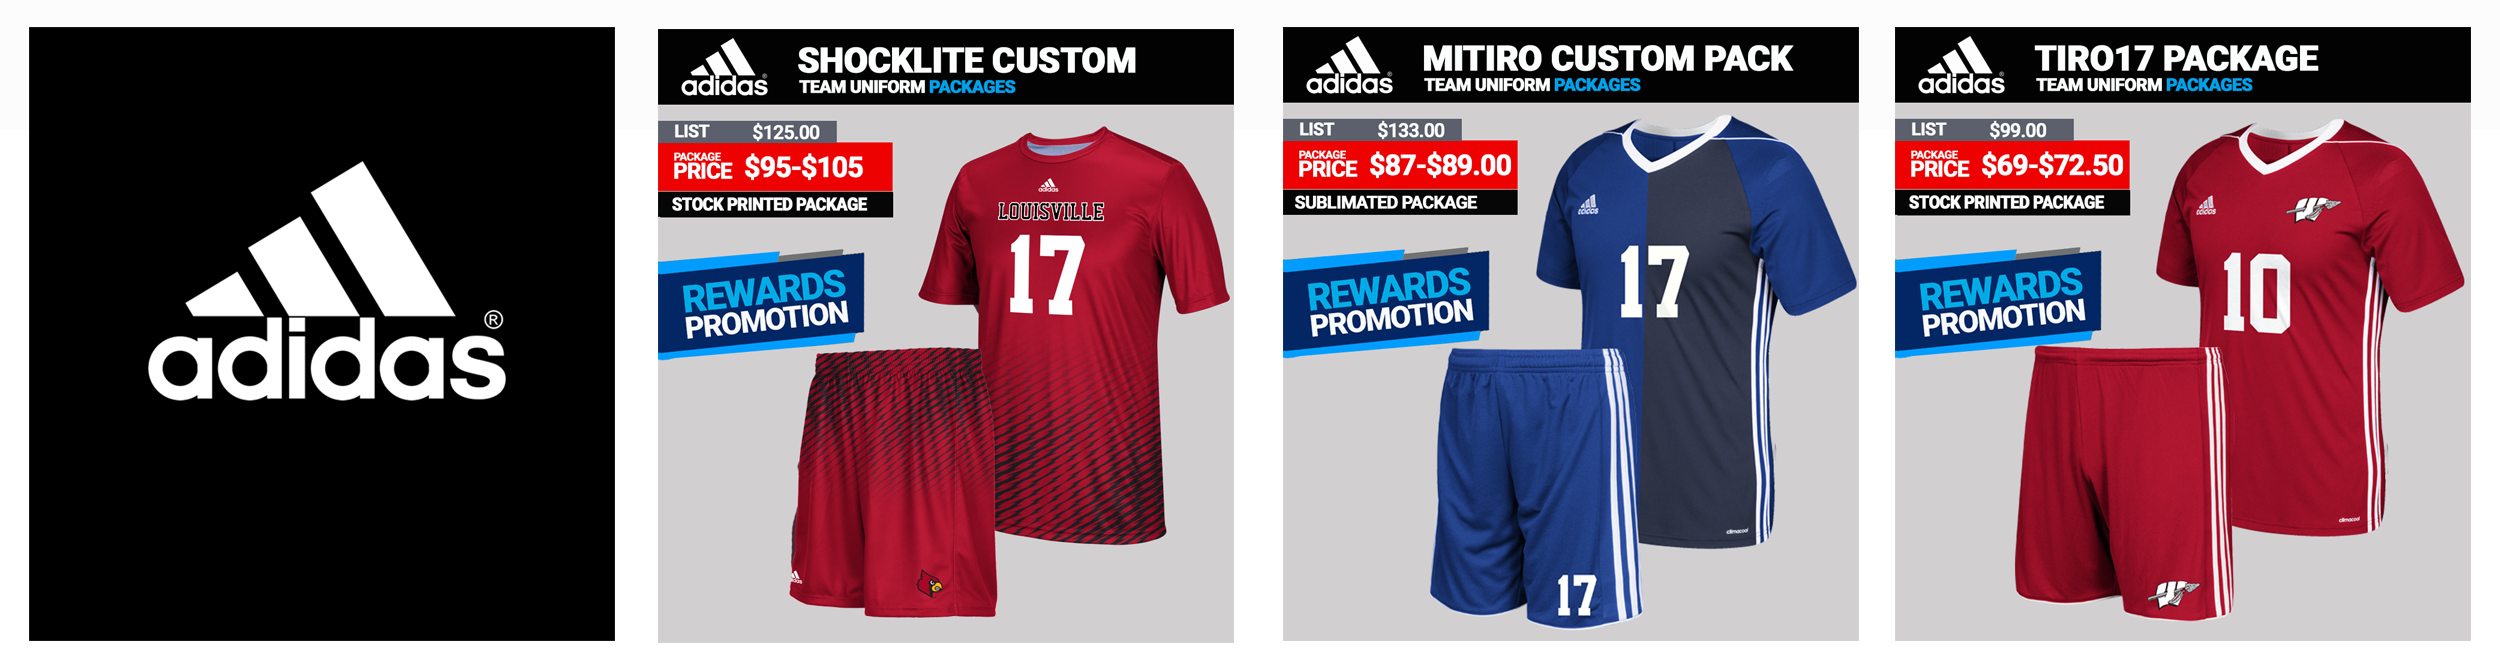 Adidas Team Soccer Uniform Packages